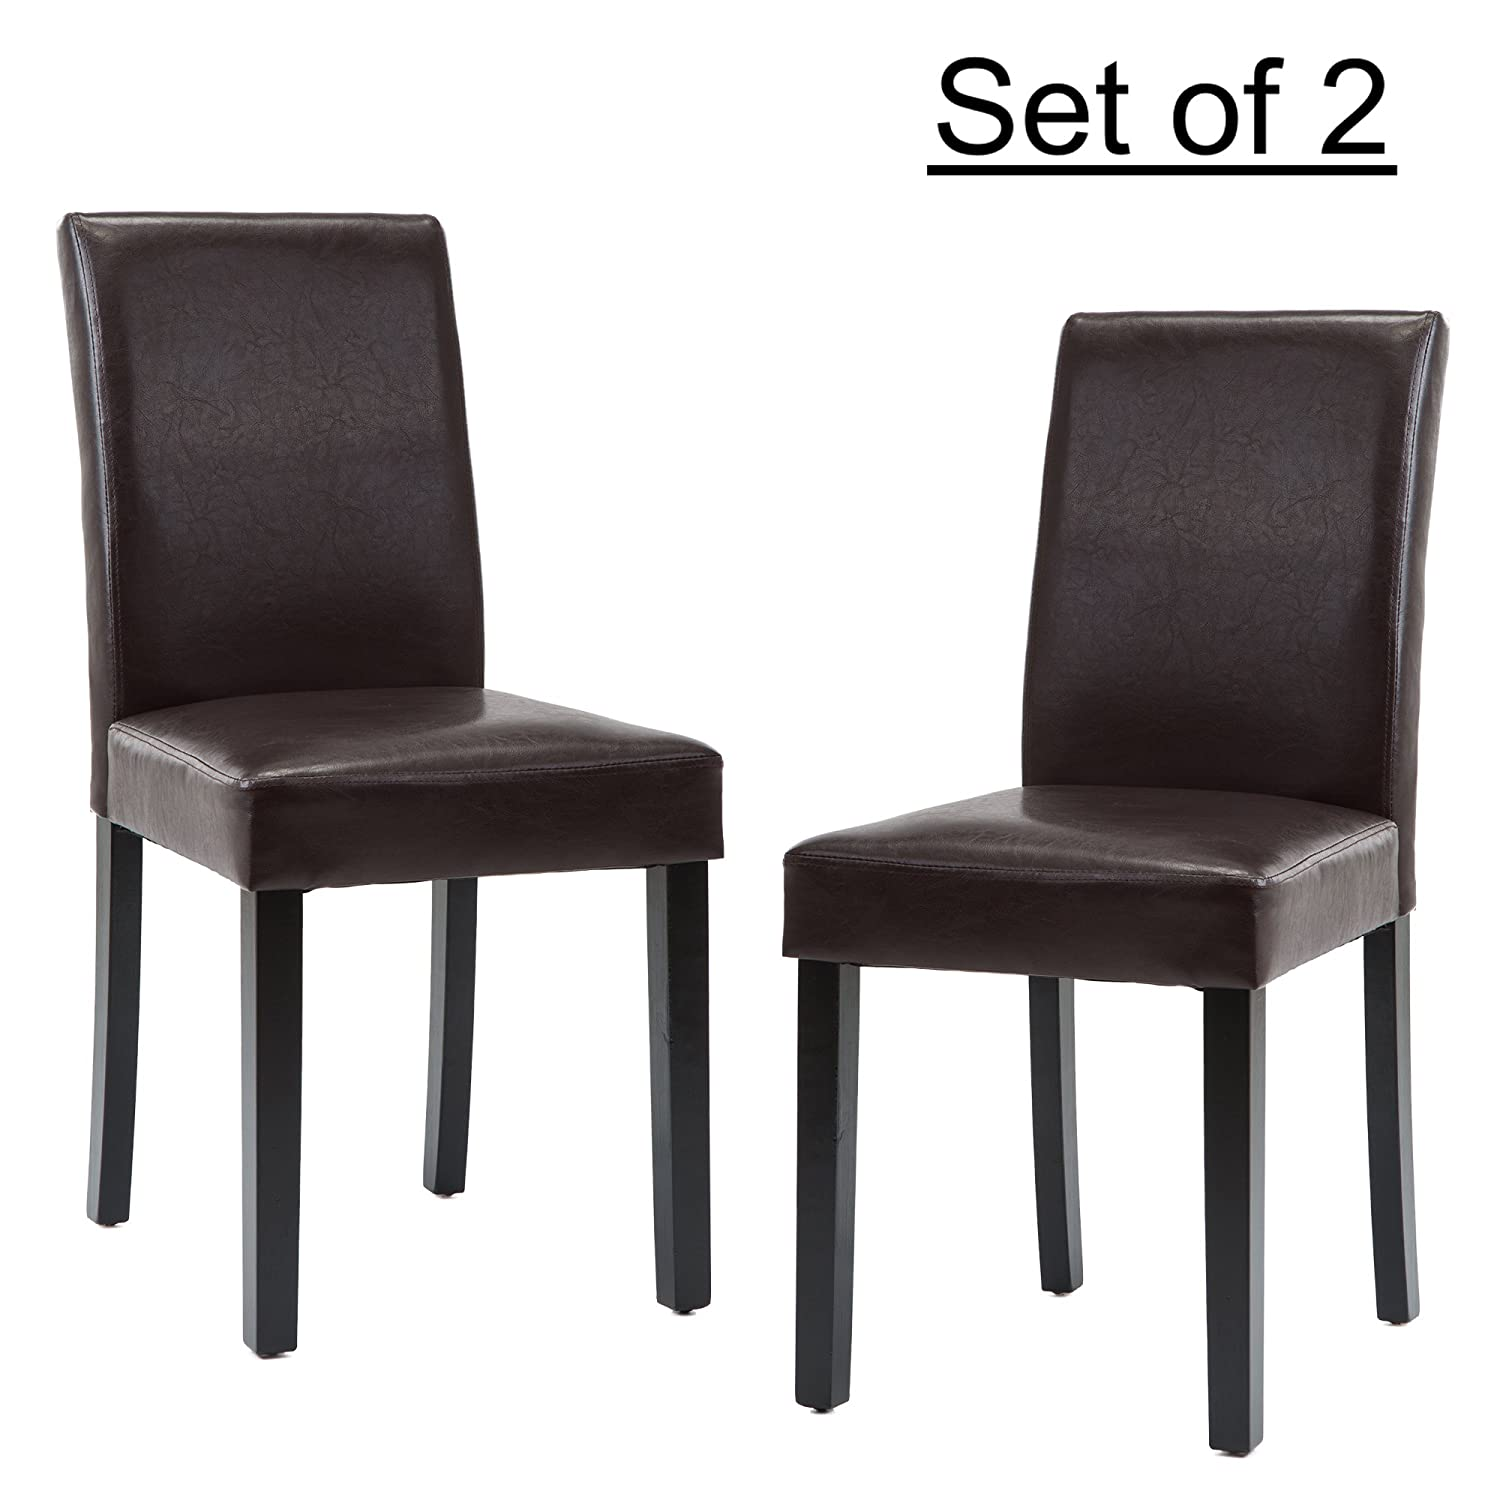 LSSBOUGHT Set of 2 Urban Style Leatherette Dining Chairs With Solid Wood Legs (2, Black) lssbought furniture